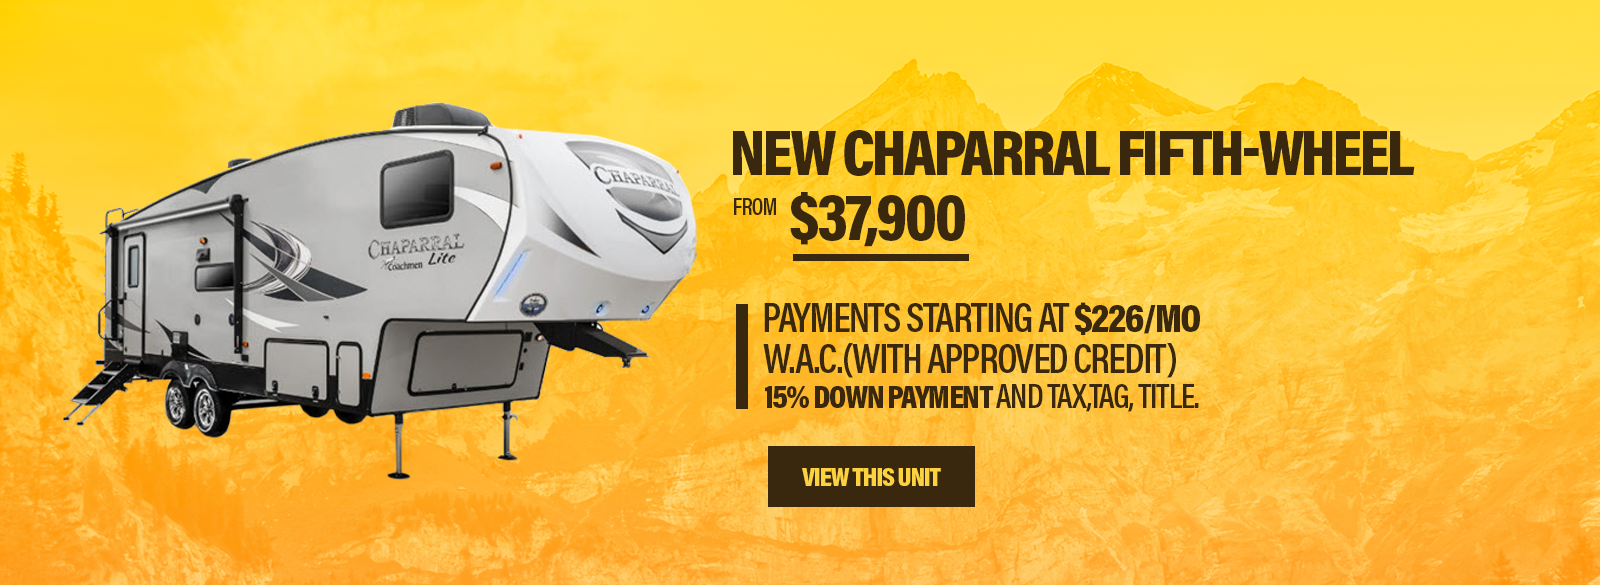 TriAmRV_Chaparral30RLS_HomepageBanner_April19.png